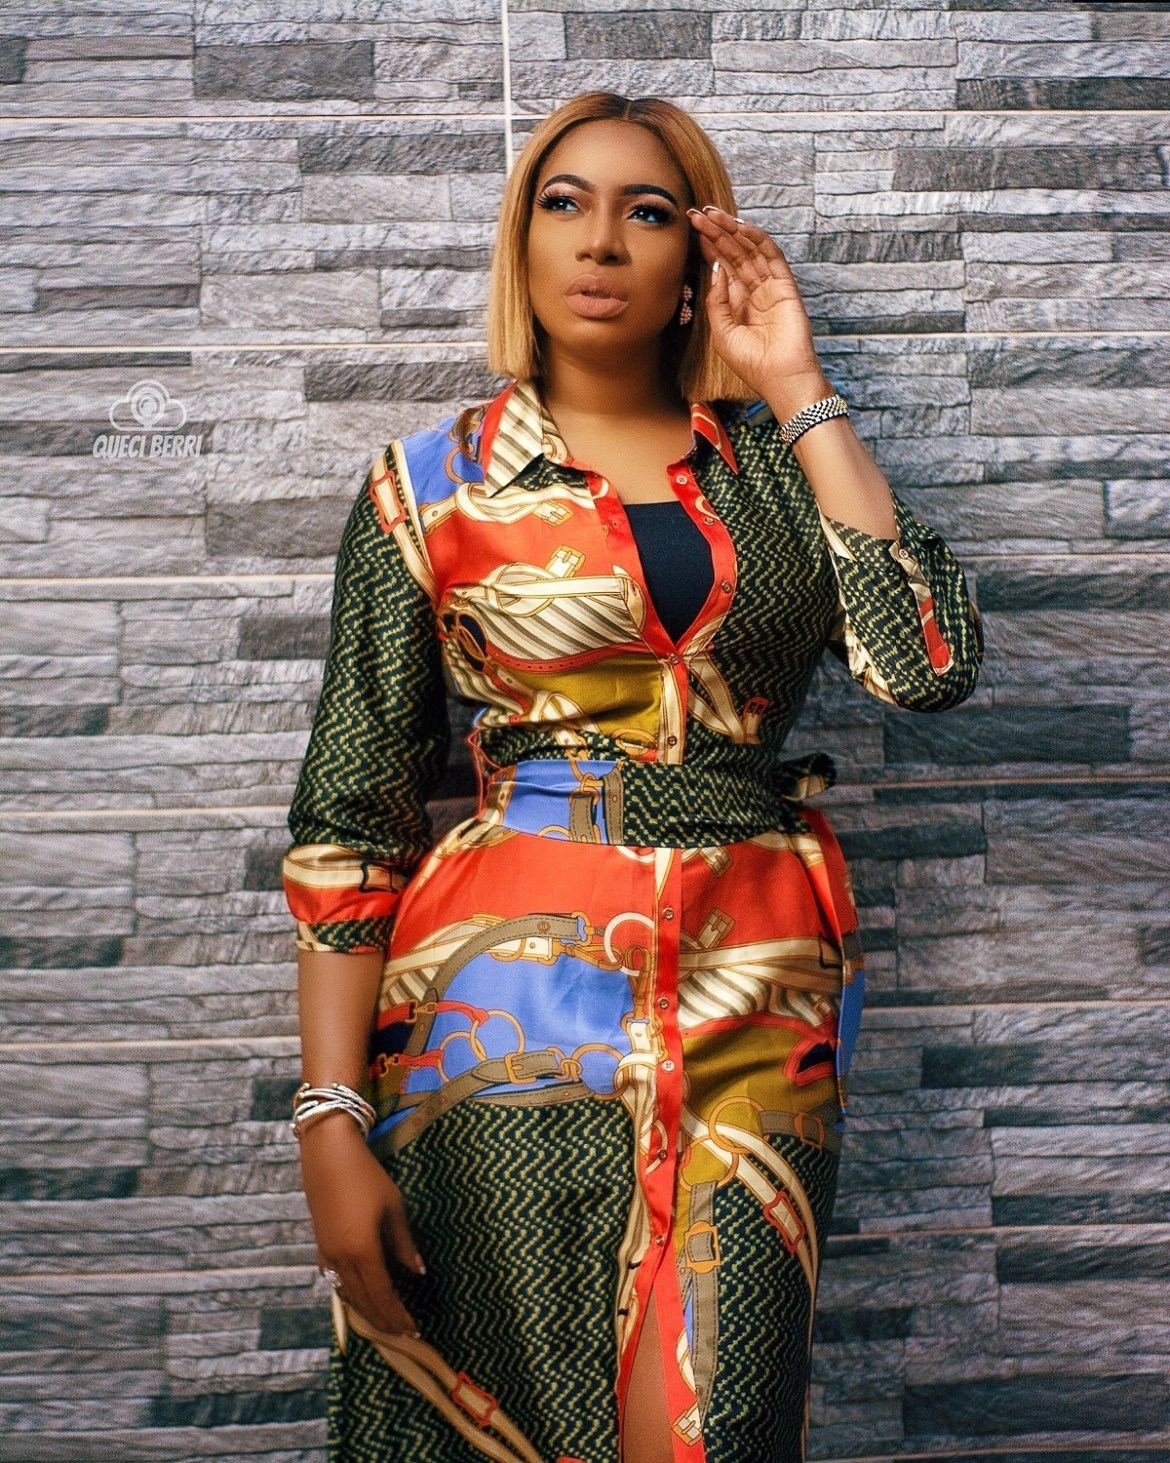 5c901defe87fc - Chika Ike releases beautiful new photos